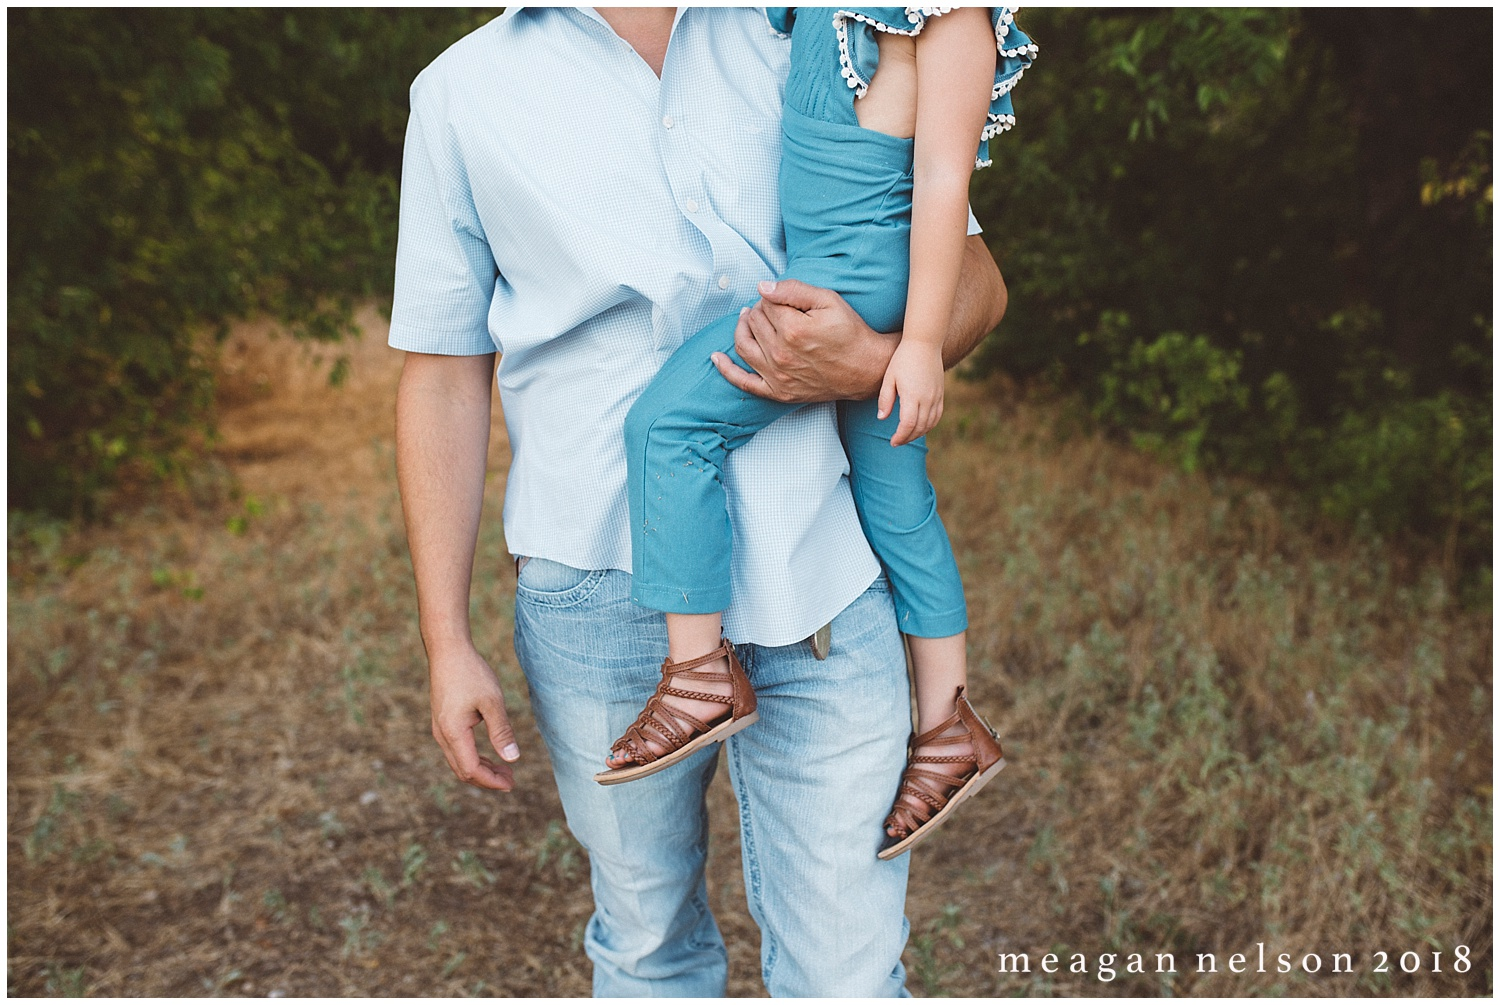 fort_worth_maternity_session_northwest_community_park0026.jpg